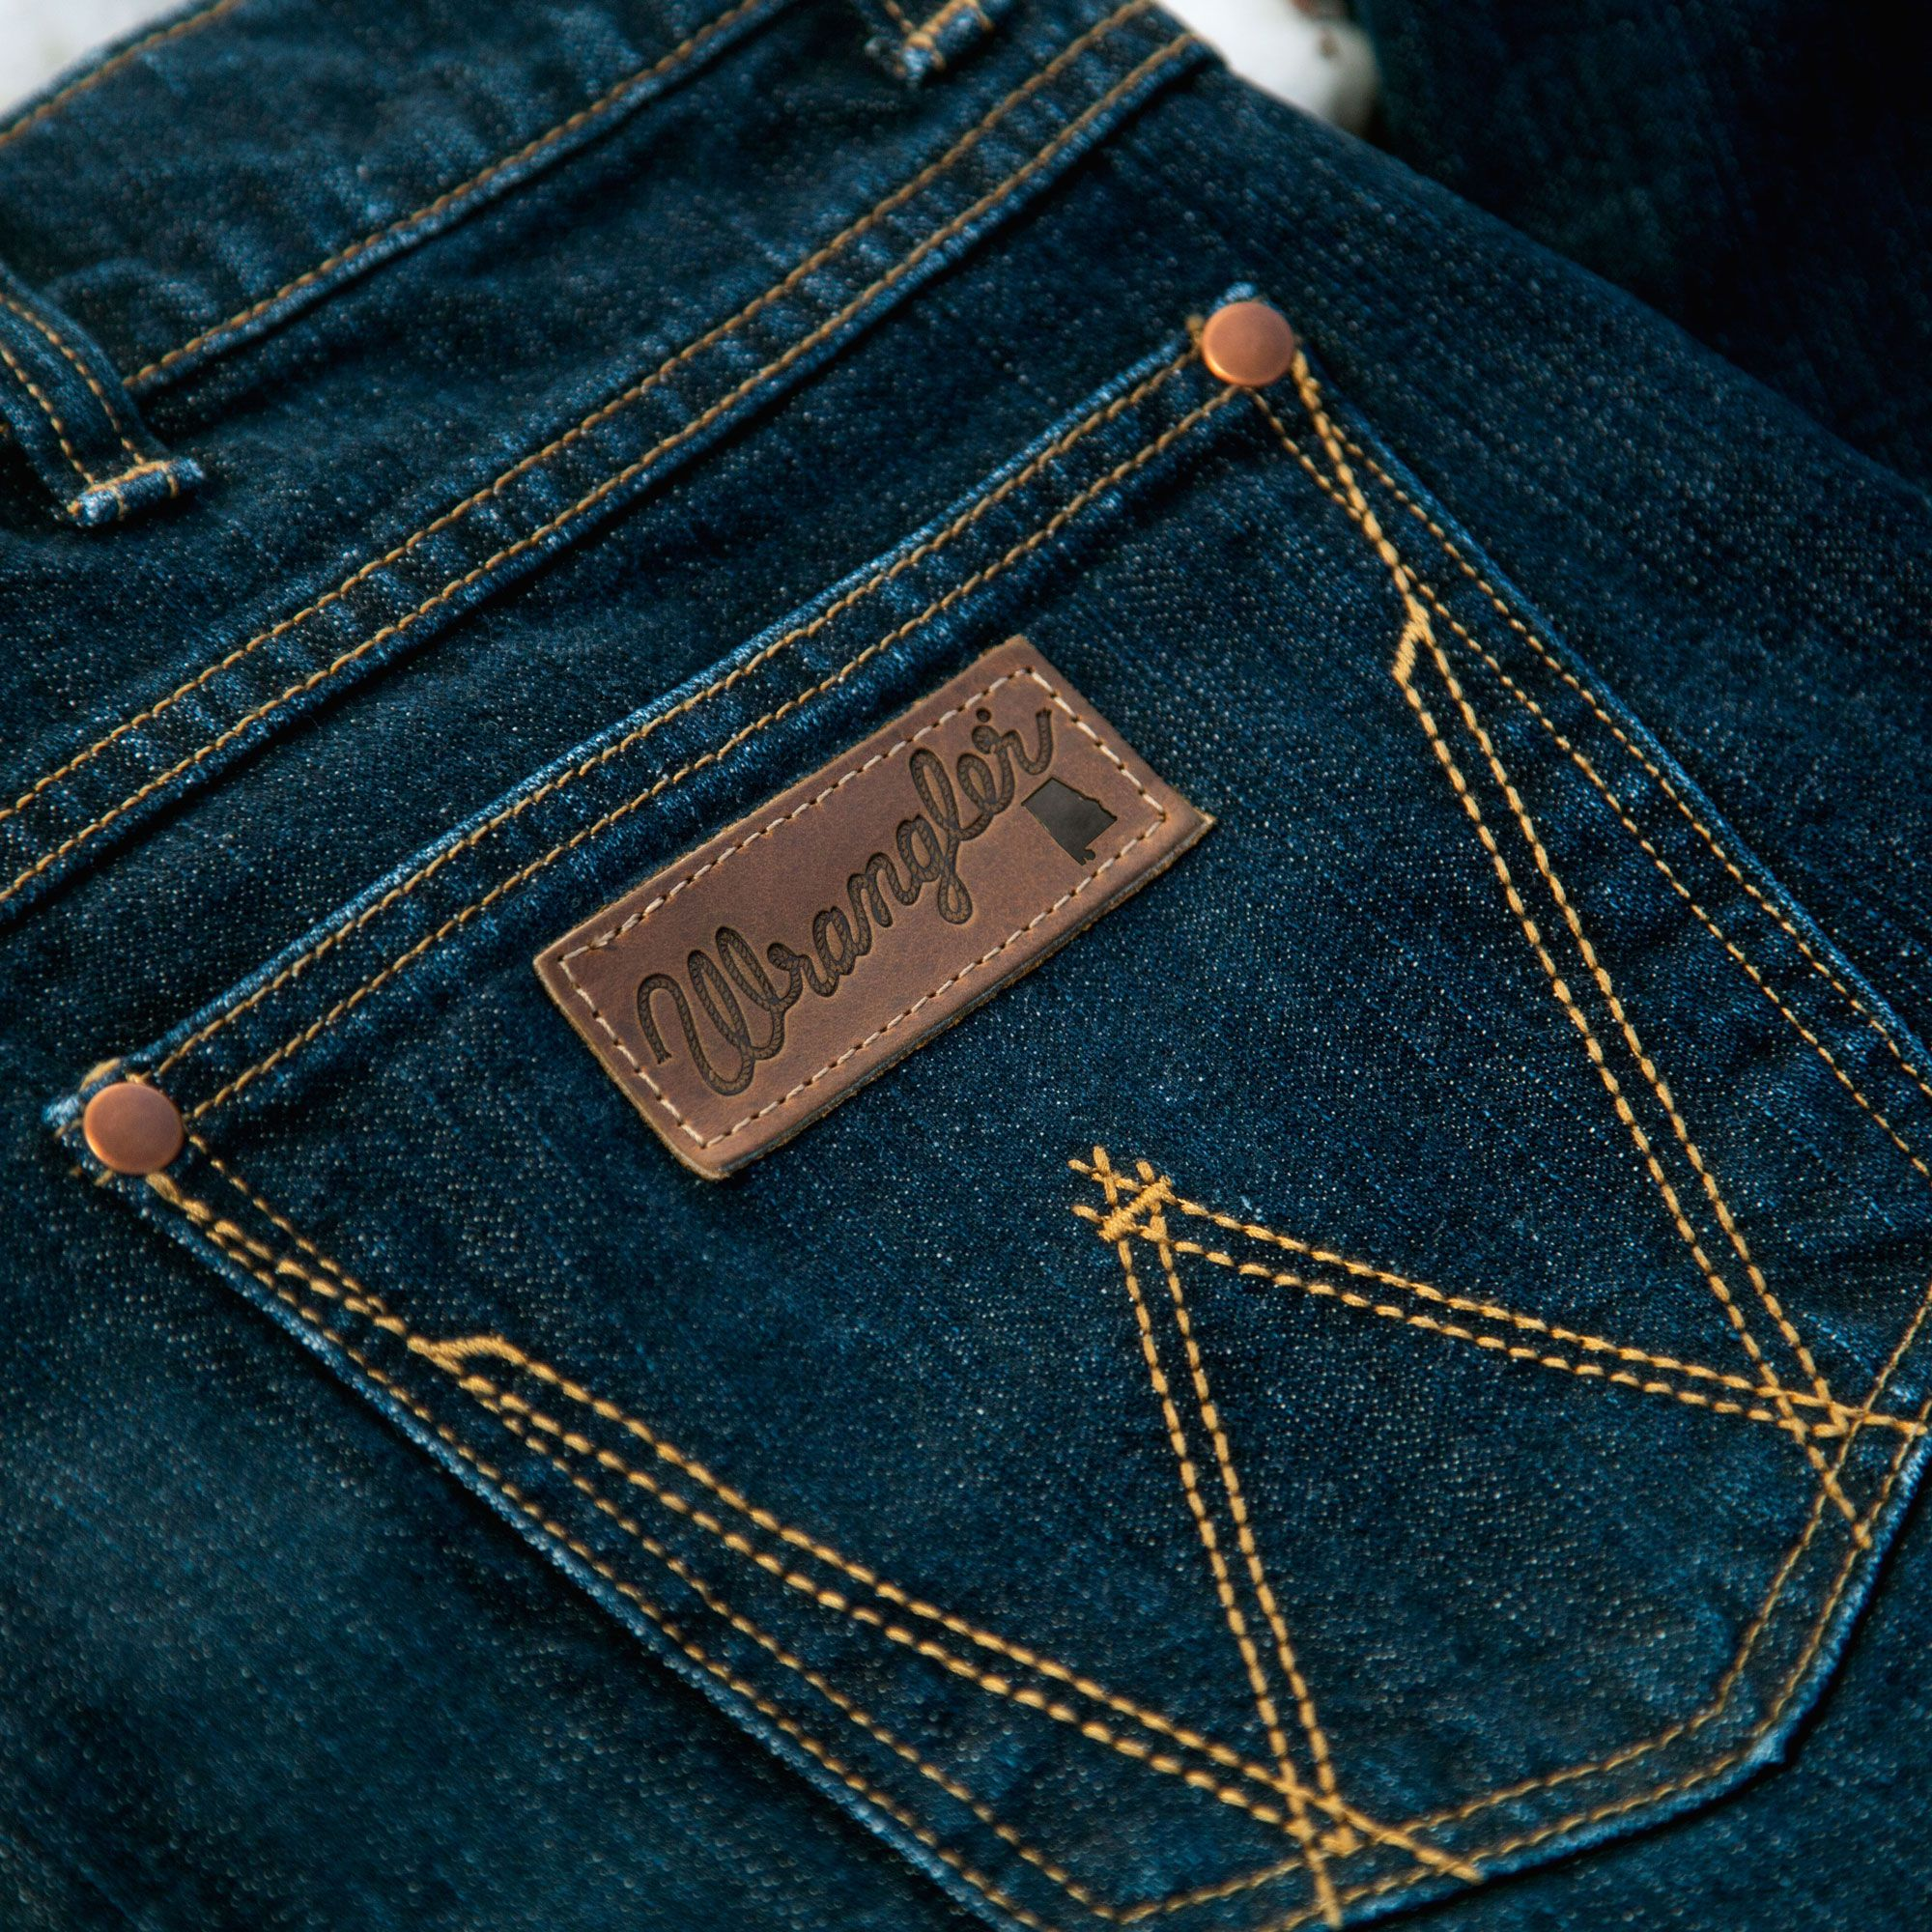 Jeans Brands in the World